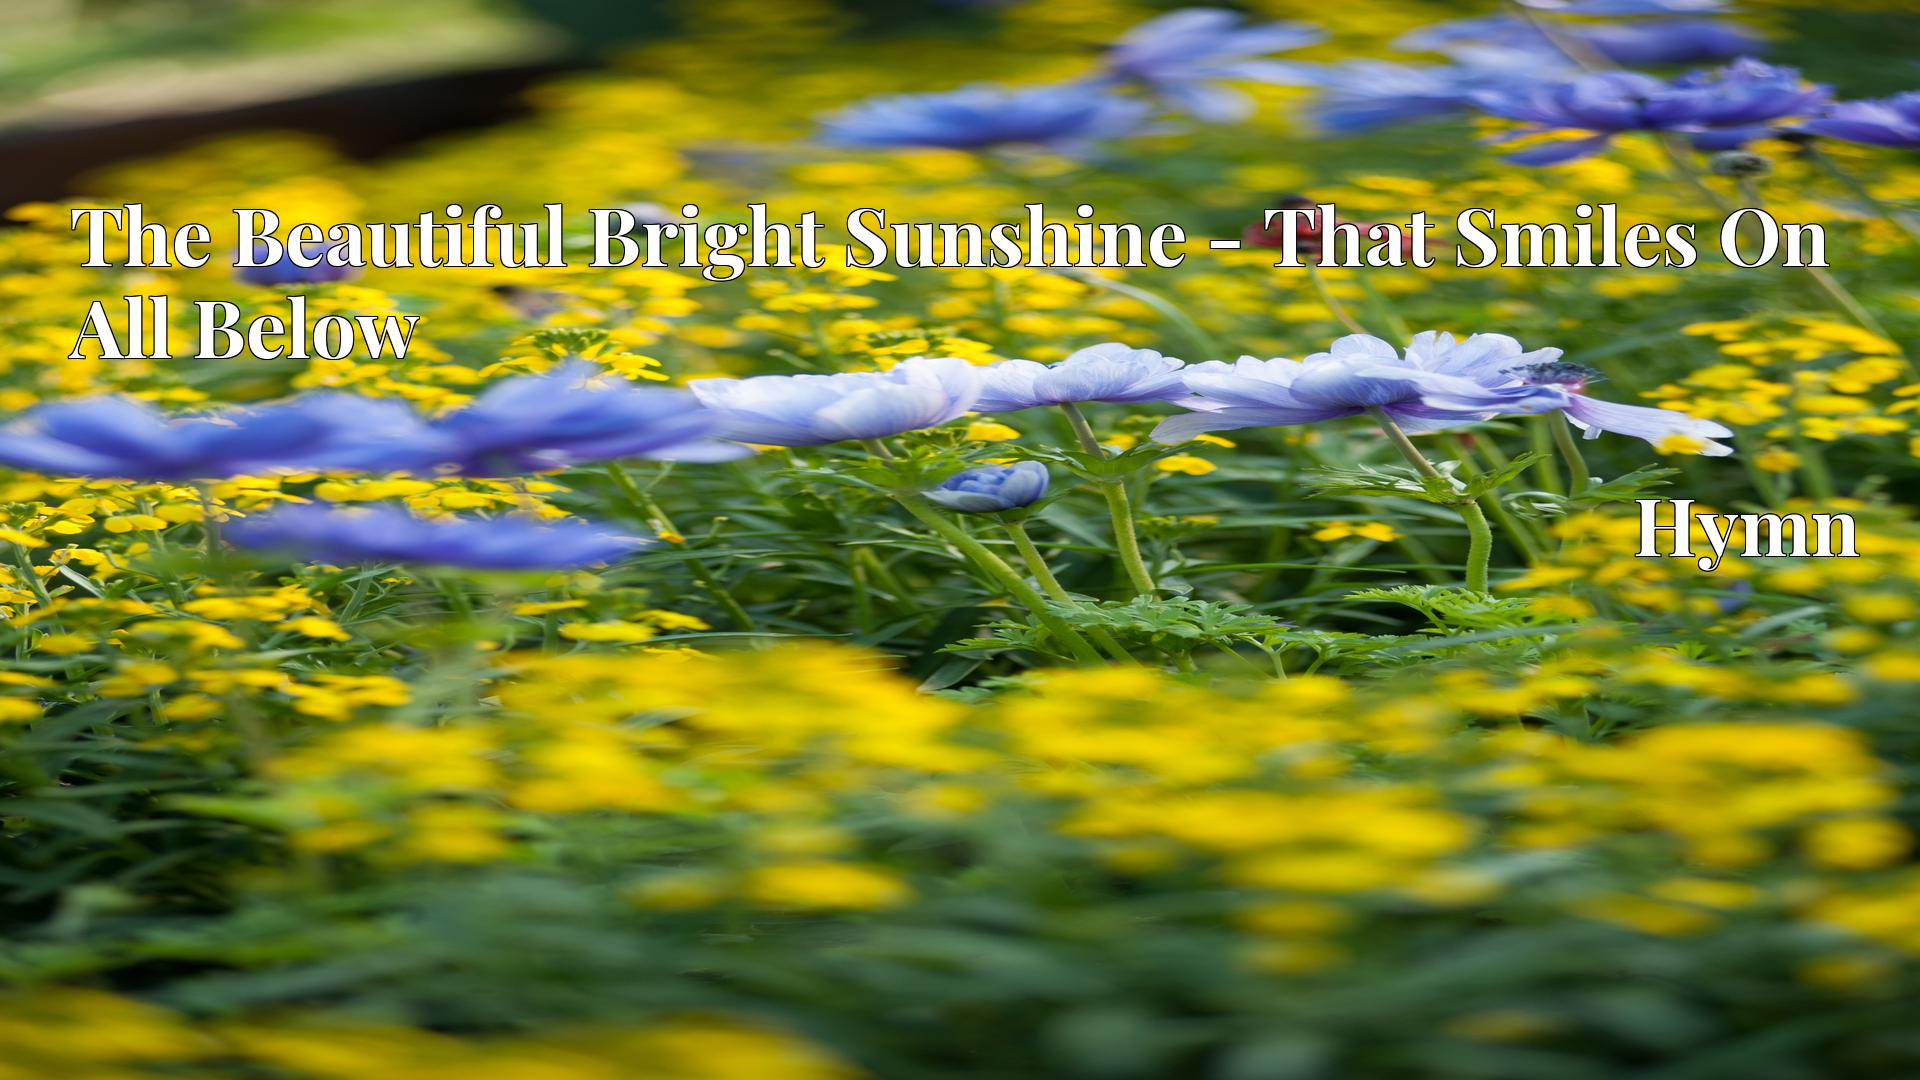 The Beautiful Bright Sunshine - That Smiles On All Below Hymn